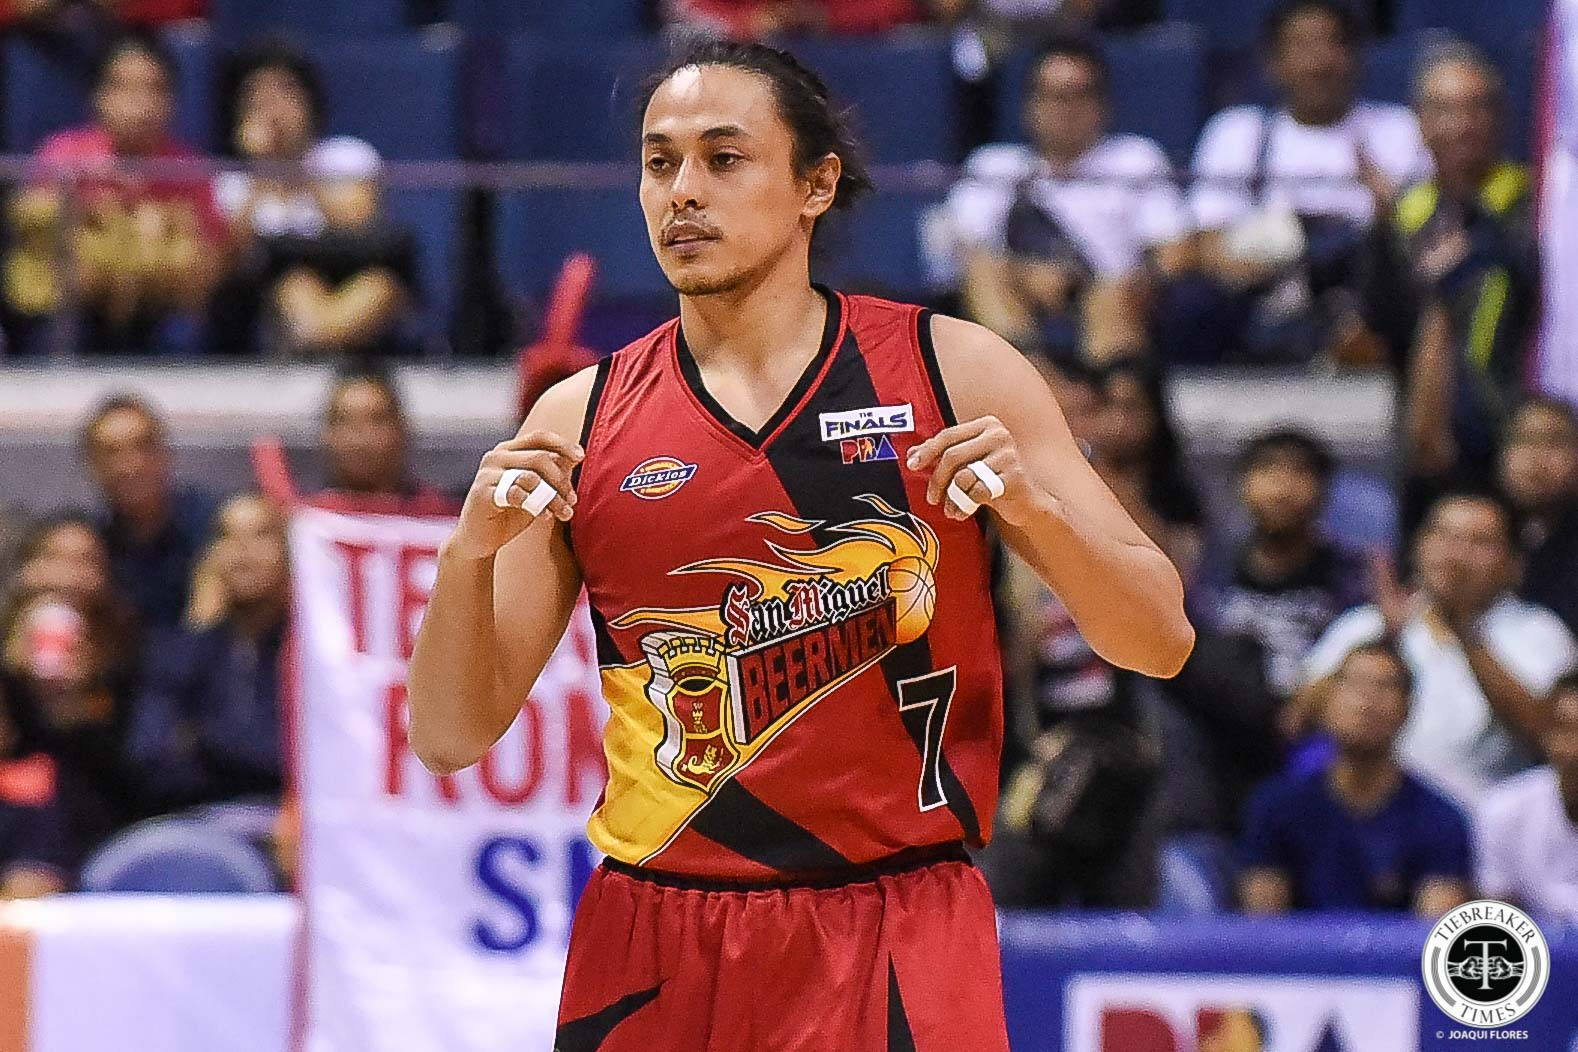 Tiebreaker Times Terrence Romeo is PBA Season 44's Mr. Quality Minutes Basketball News PBA  Terrence Romeo Robert Bolick PBA Season 44 Press Corps Awards Night PBA Season 44 Northport Batang Pier NLEX Road Warriors Javee Mocon CJ Perez Bobby Ray Parks Jr. Abu Tratter